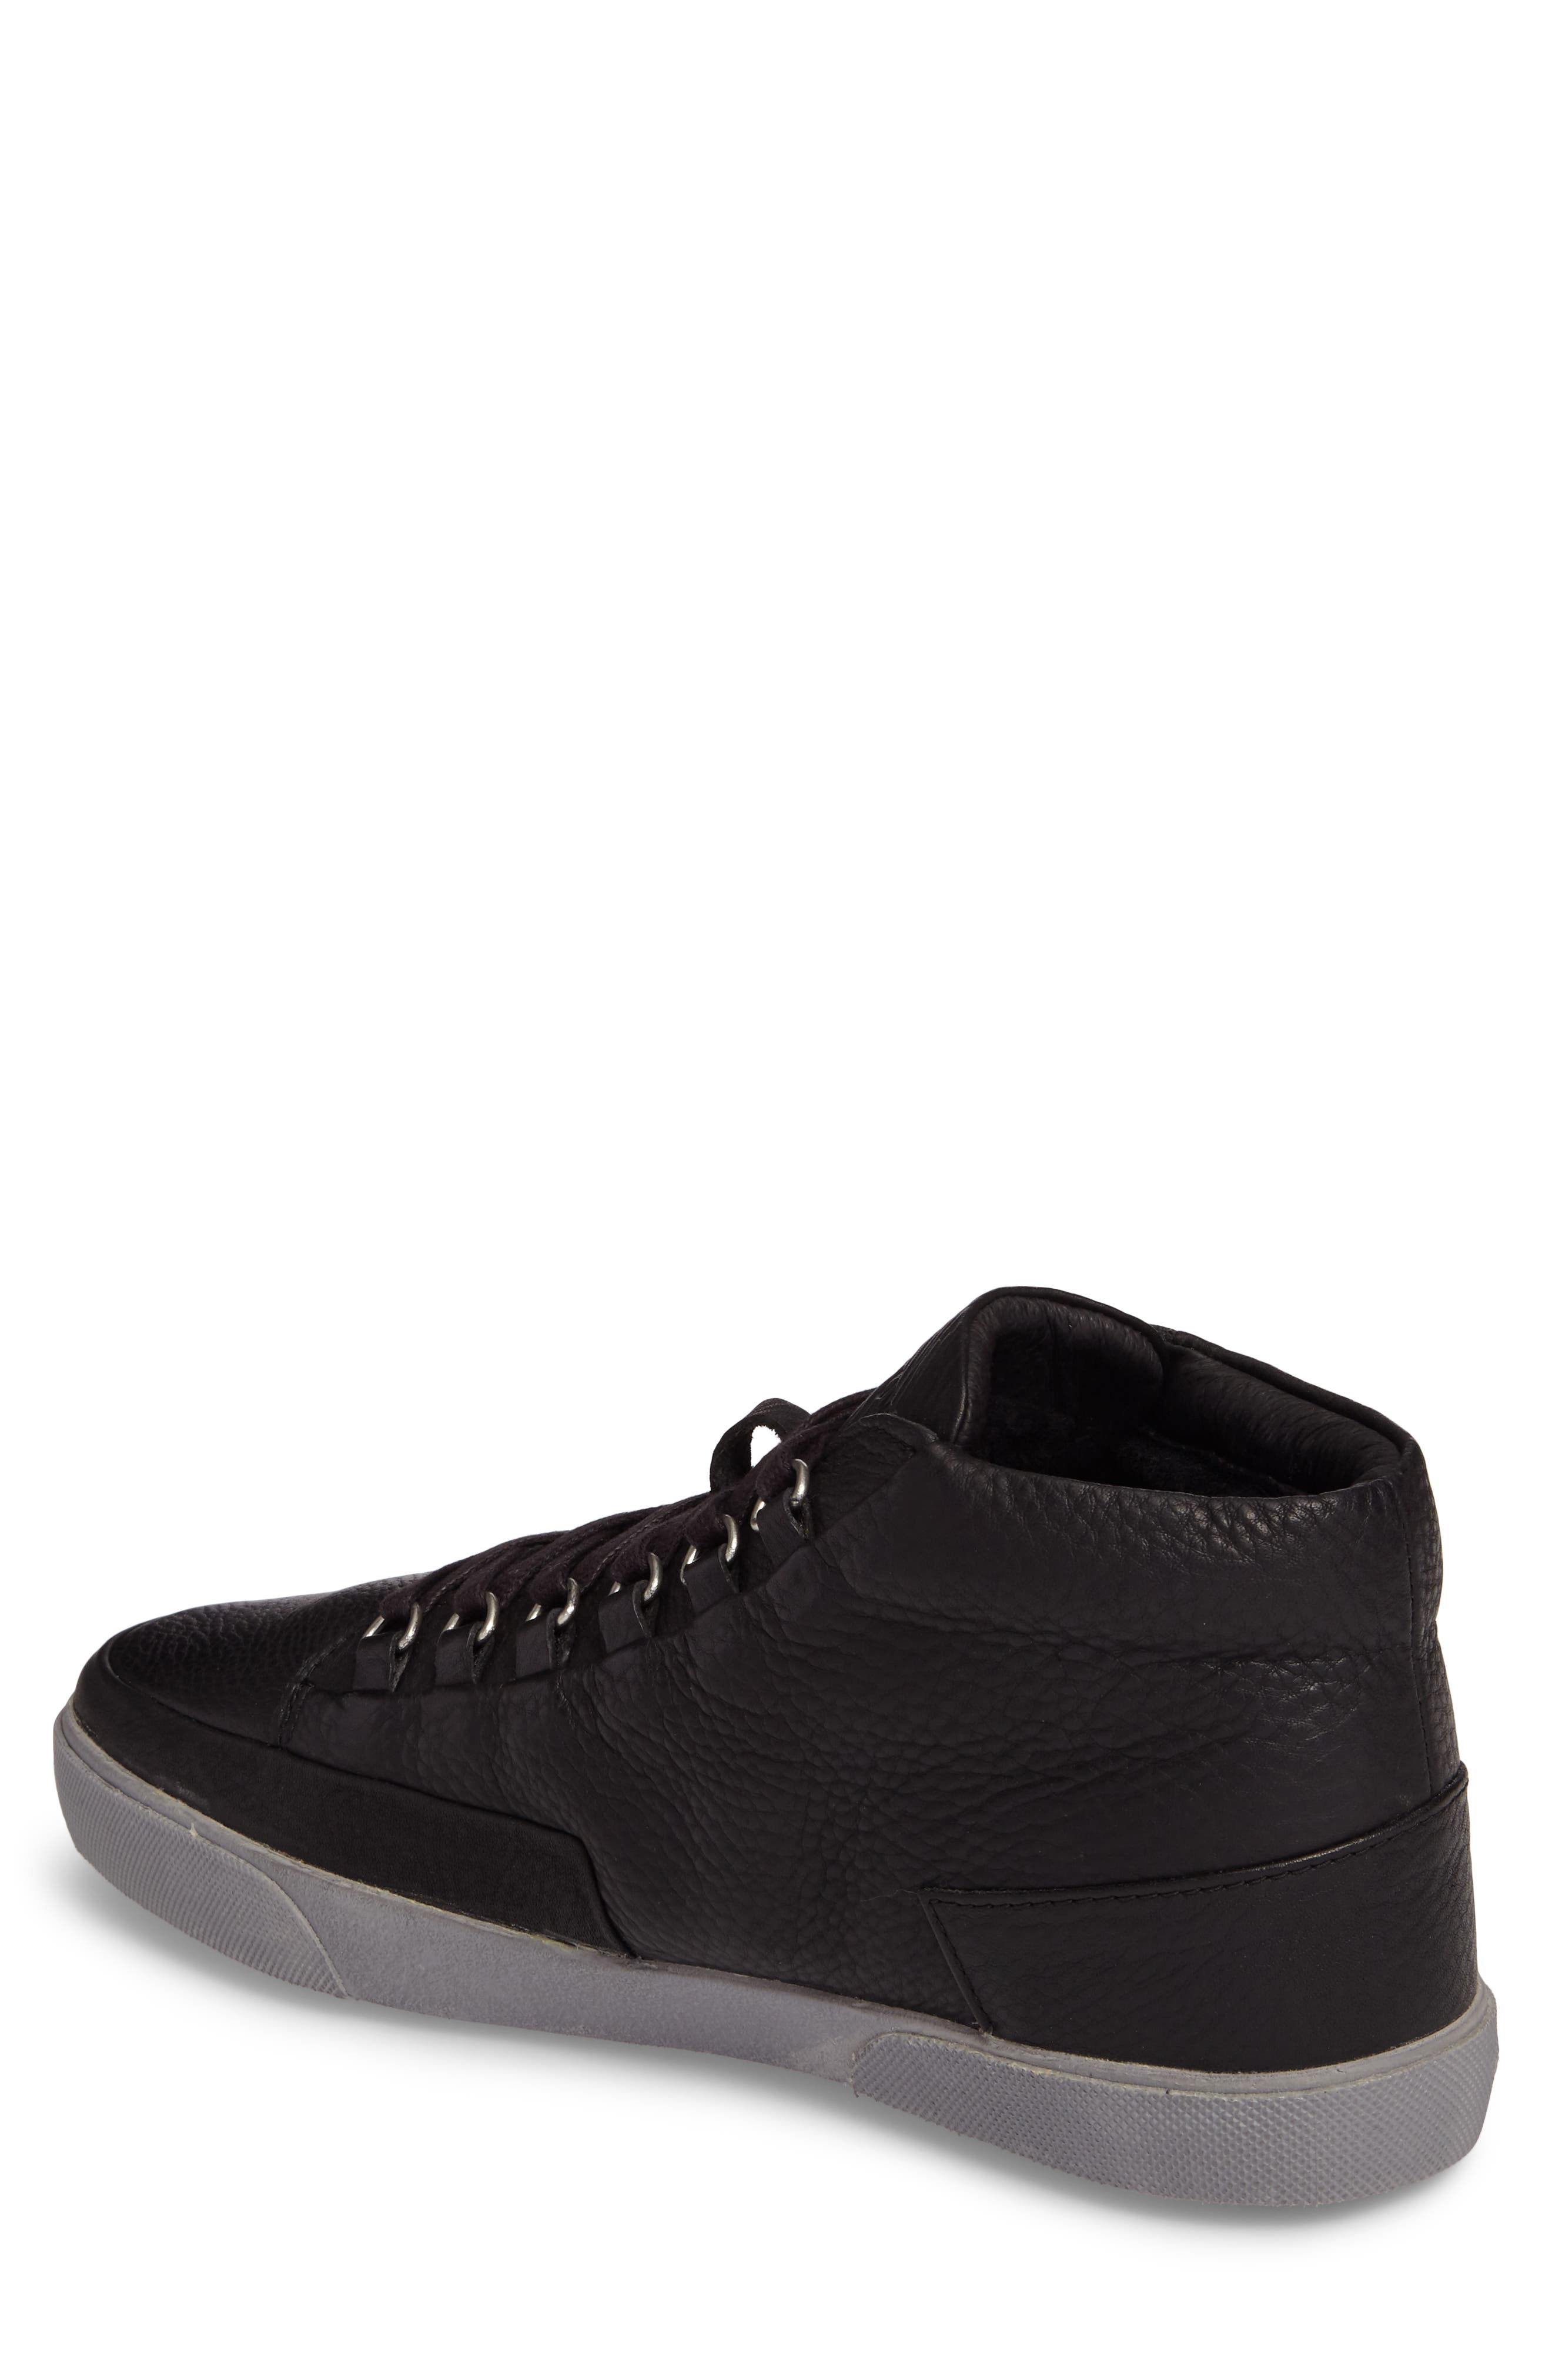 KM 02 Sneaker with Genuine Shearling Lining,                             Alternate thumbnail 2, color,                             Black Leather